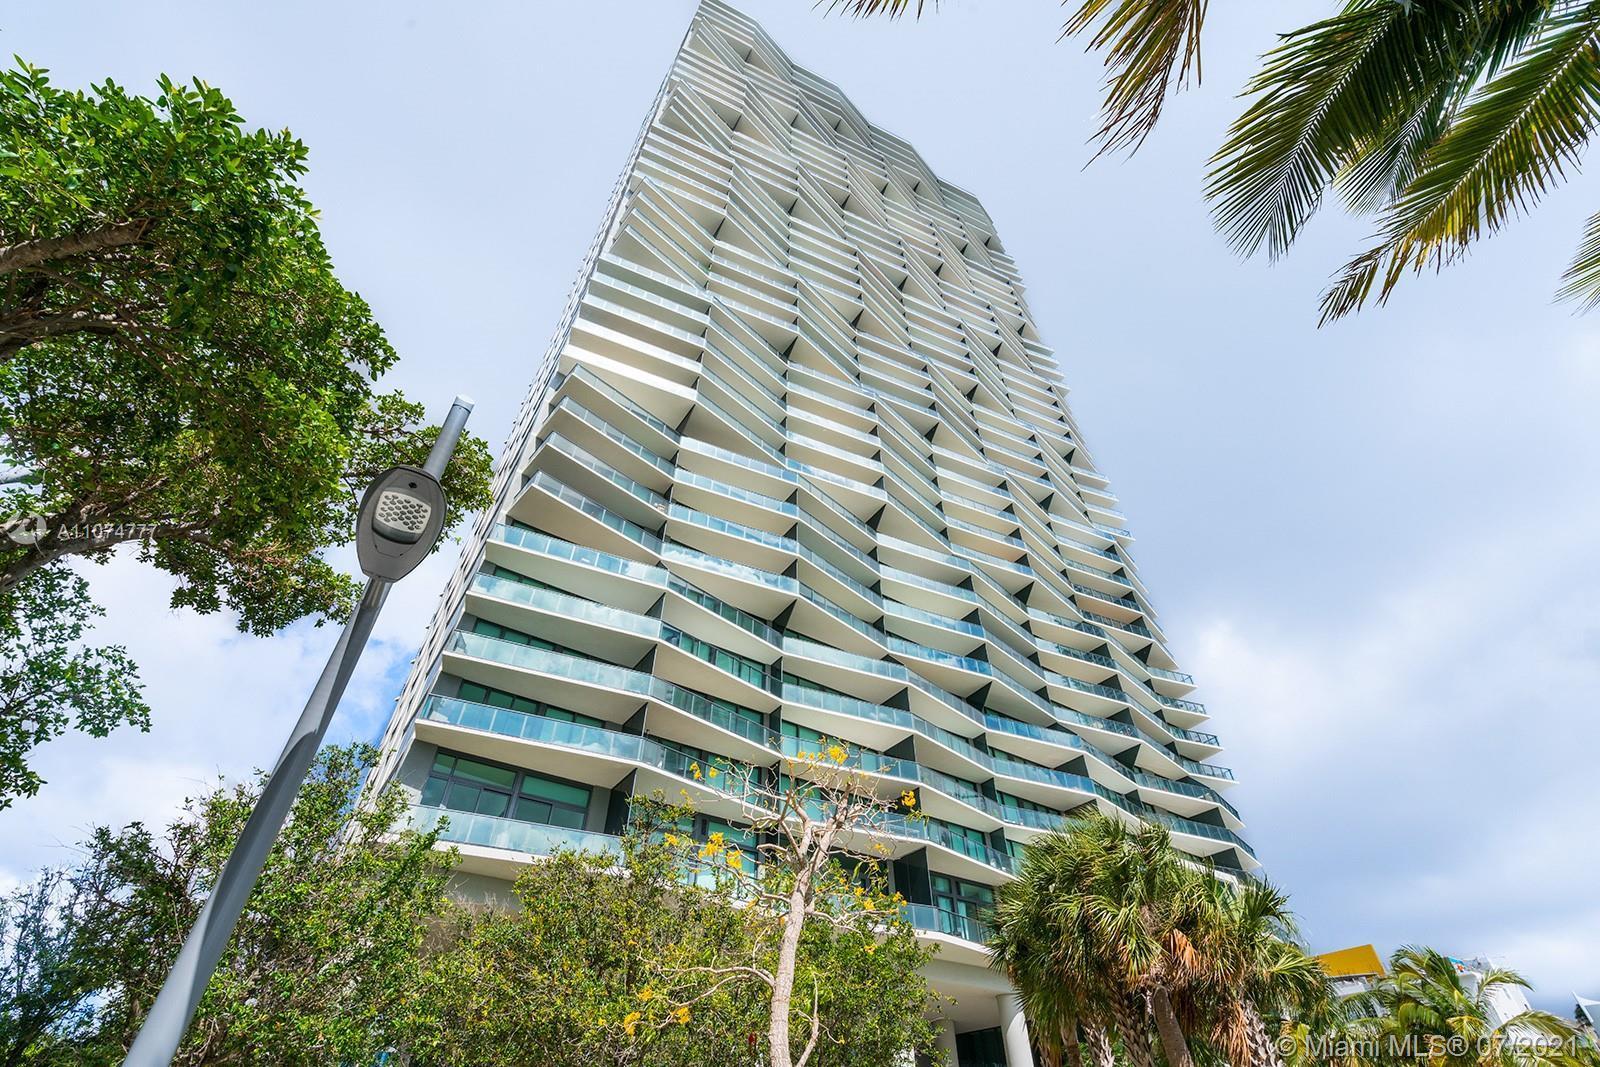 ICON BAY 4004, South East Lower Penthouse Corner, offering 5 Bedrooms + 4.5 baths + Family room, cov